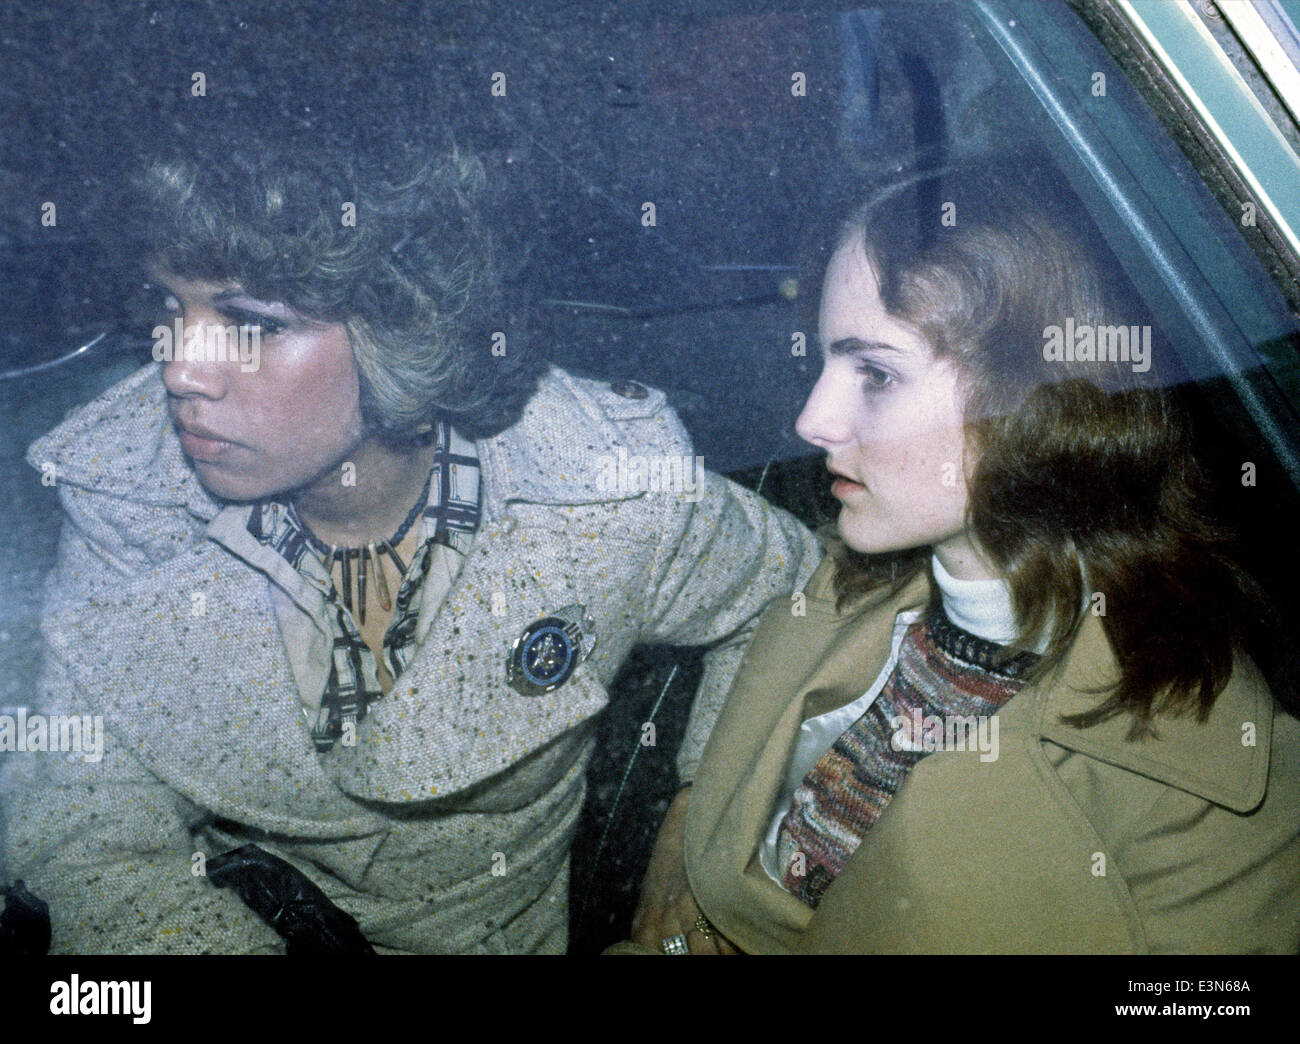 Patty Hearst (right) & US Marshal Janey Jimenez during trial. 1976, San Francisco - Stock Image